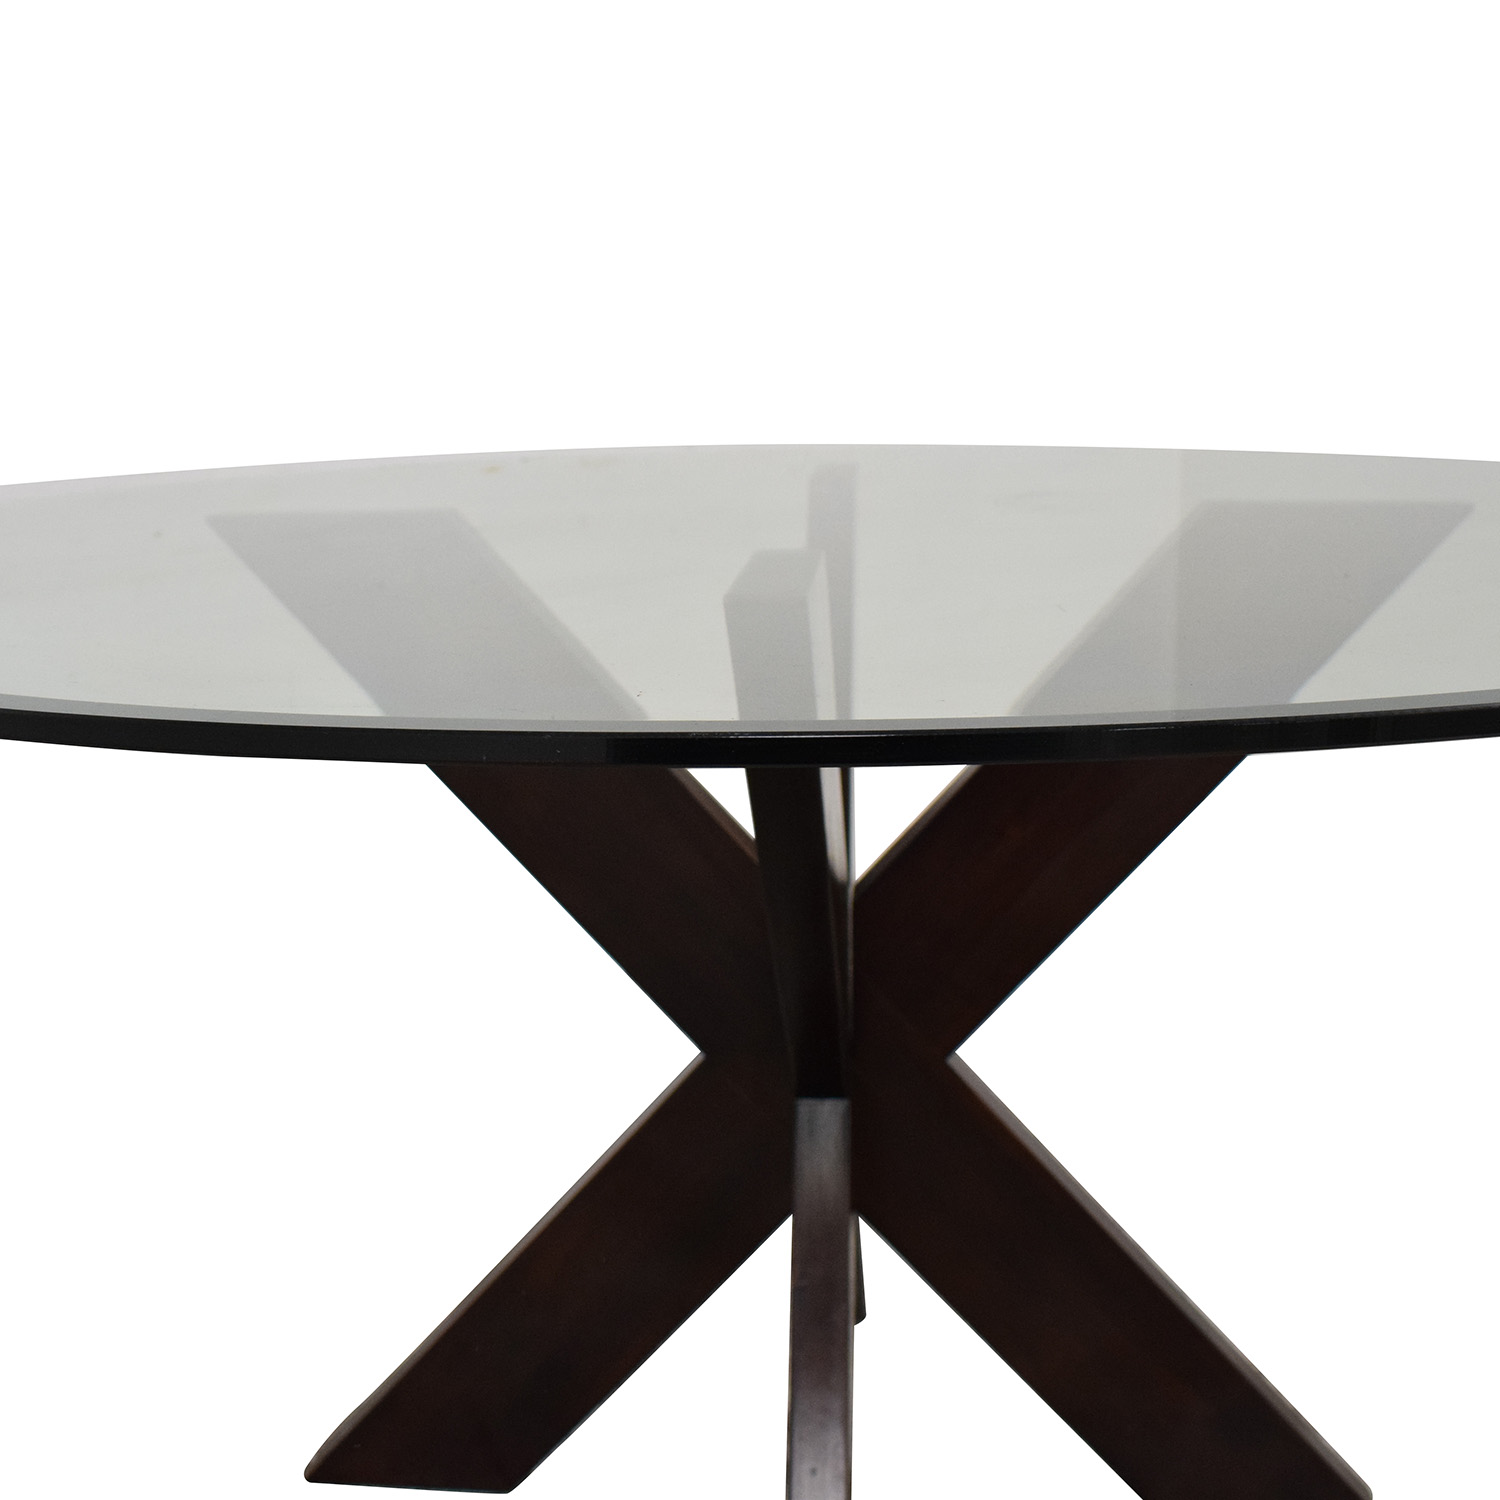 57 Off Pier 1 Pier 1 X Base Dining Table With Glass Top Tables